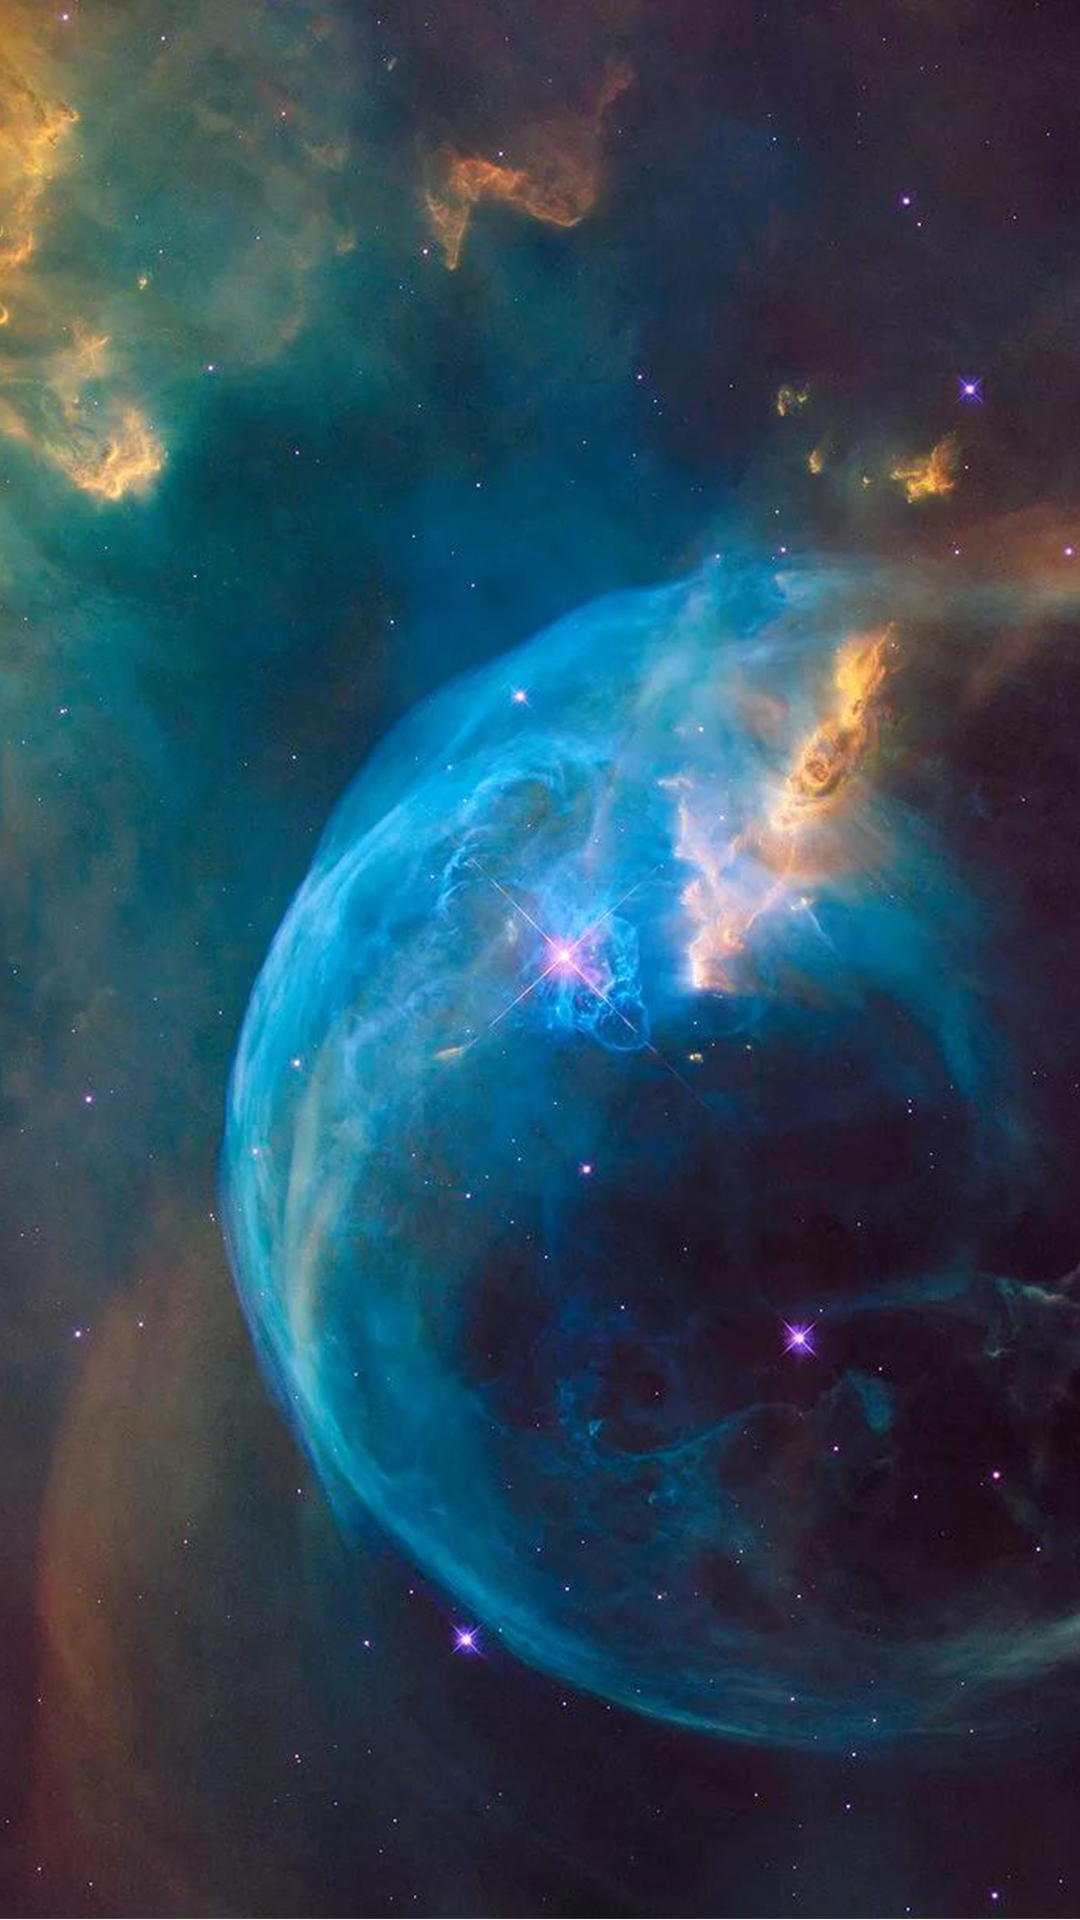 Supernova blue bubble explosion hubble android wallpaper free download voltagebd Images